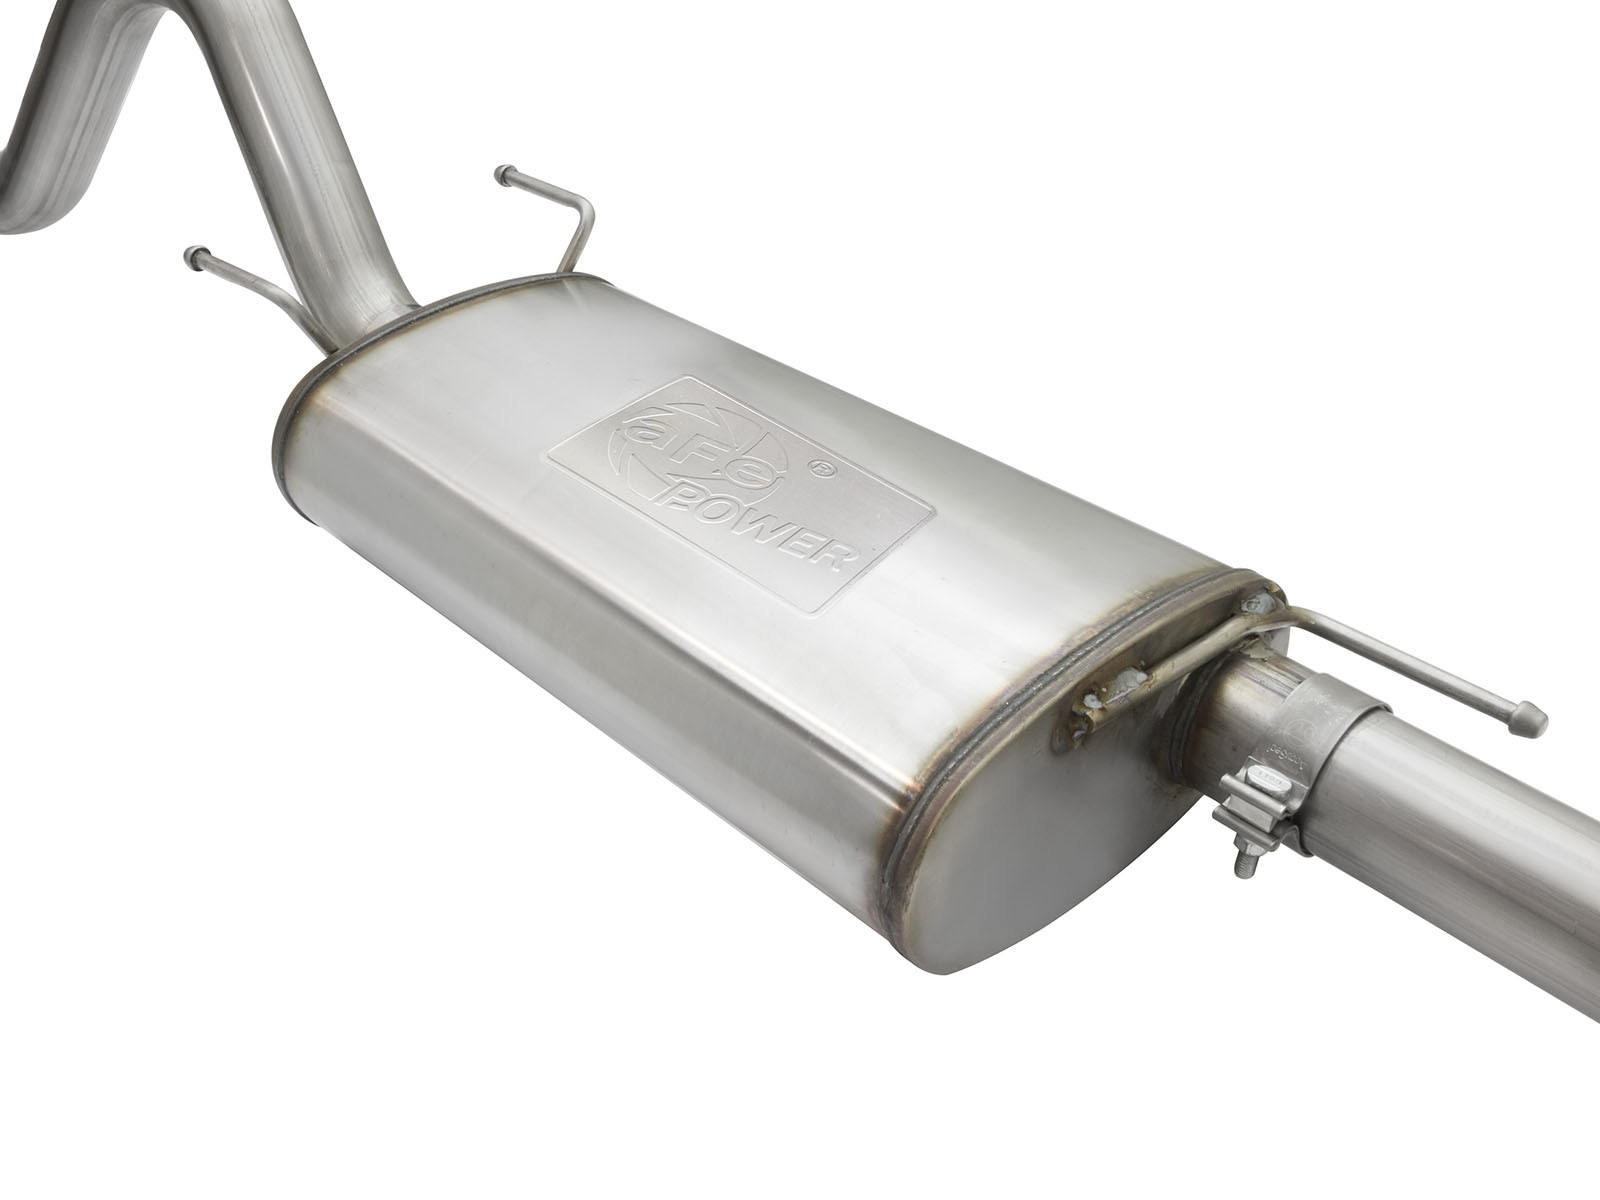 "aFe POWER MACH Force-Xp 3"" Stainless Steel Cat-Back Exhaust System - Polished Tip"